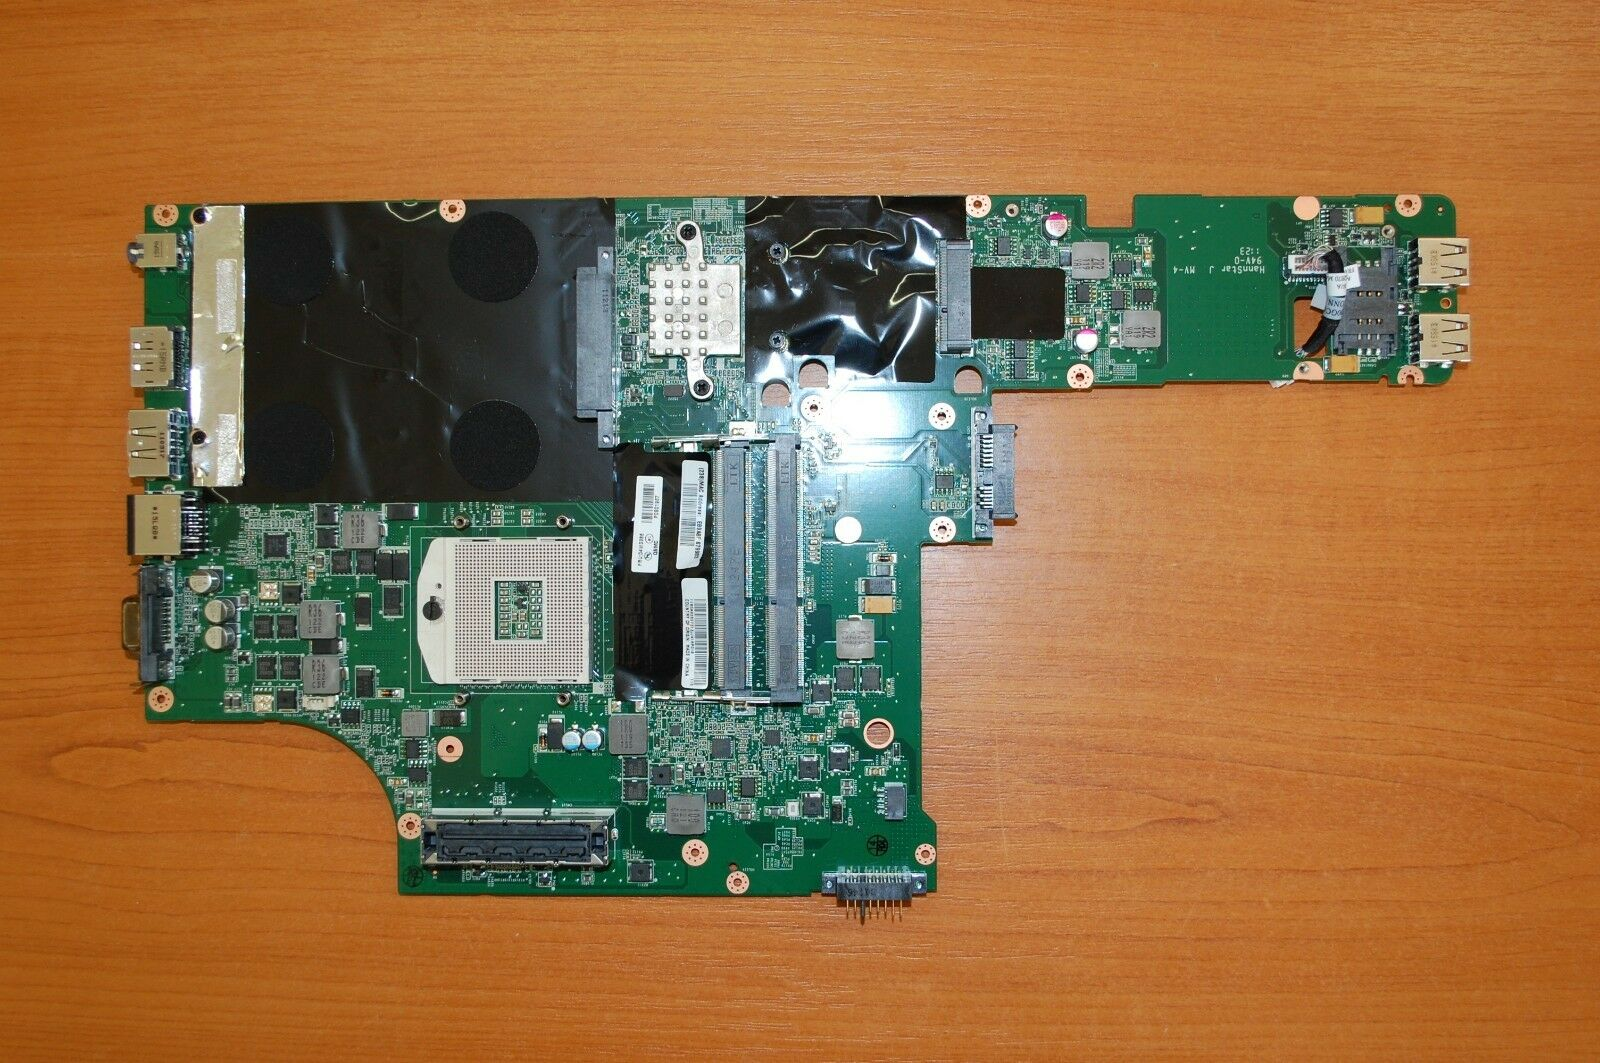 Details about IBM Lenovo ThinkPad L520 Mainboard FRU 04W0386 Notebook  Laptop Motherboard